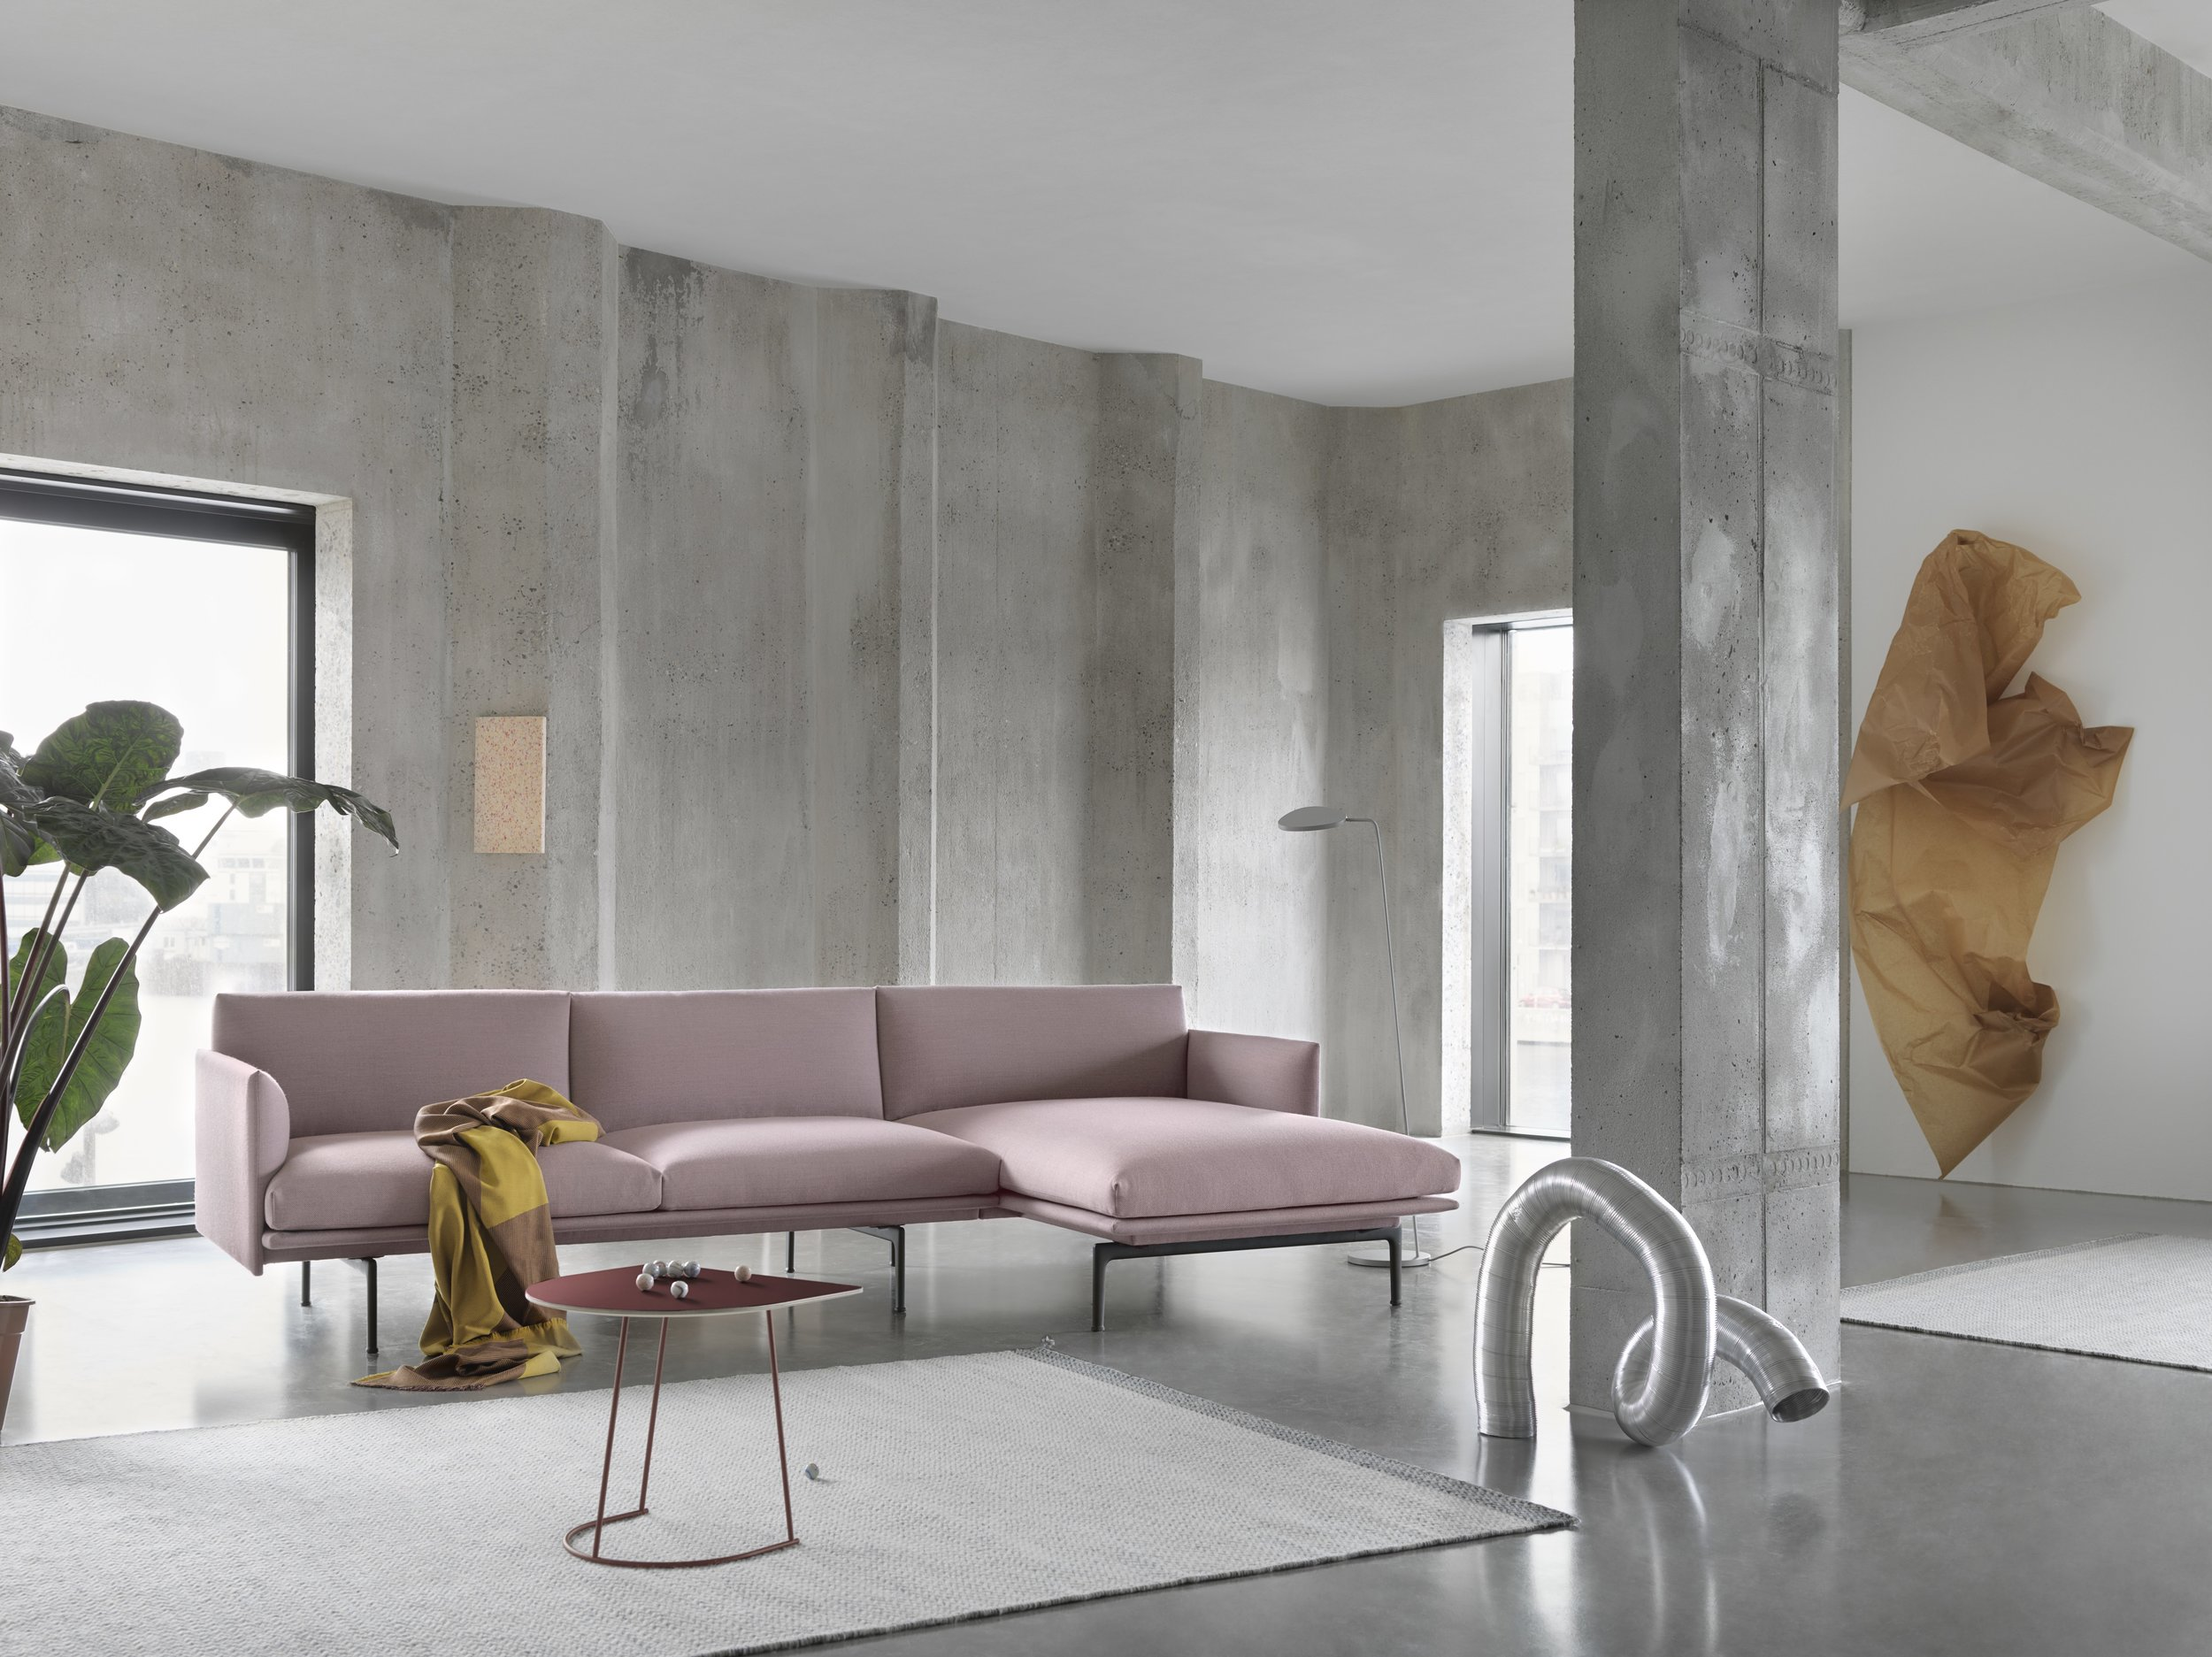 Outline-Chaise-longue-Fiord-551-Airy-plum-Ply-Sway-Leaf-Floor-Lamp-org.jpg